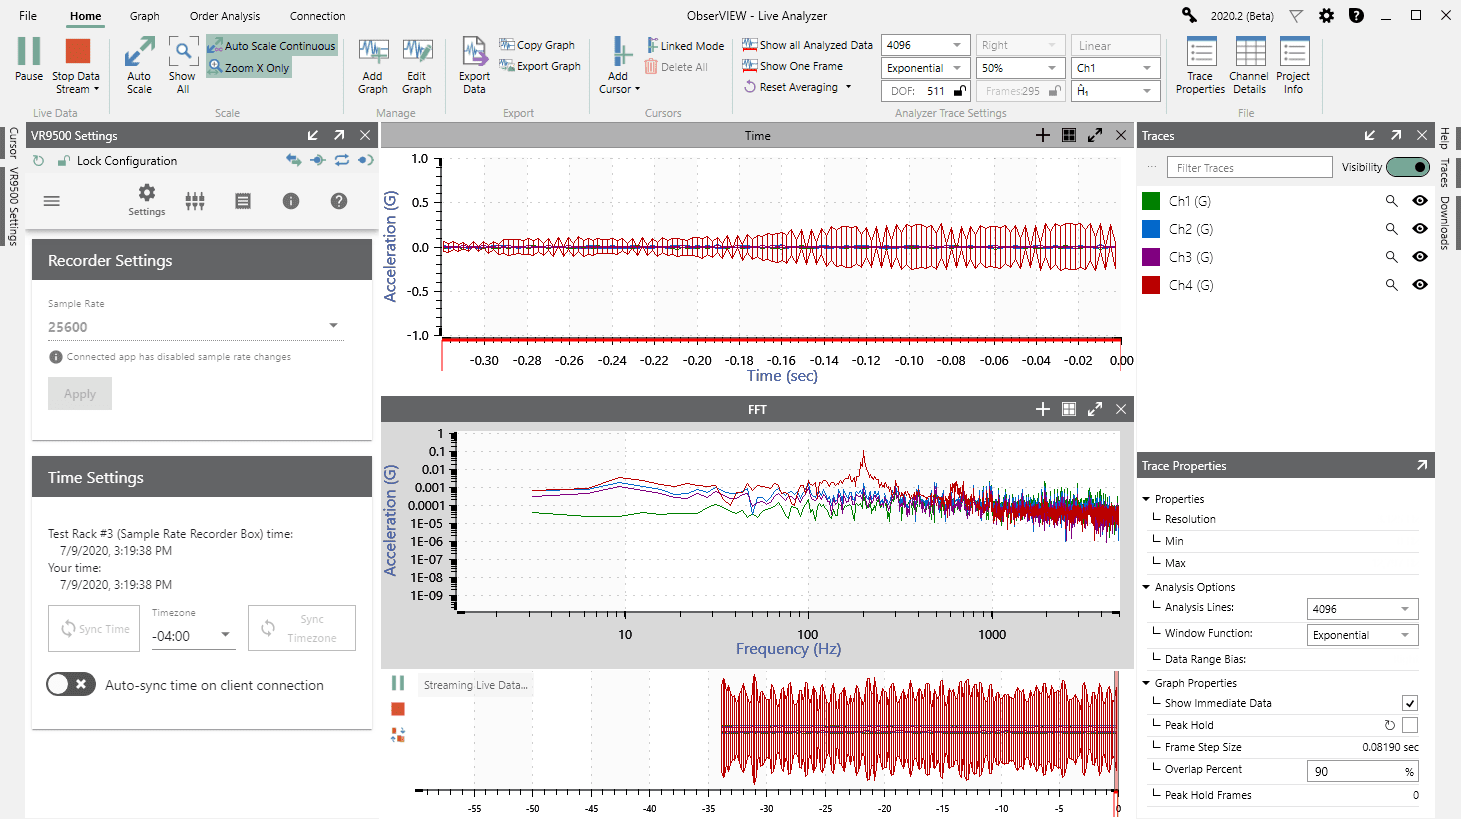 ObserVIEW Live Analyzer Screenshot